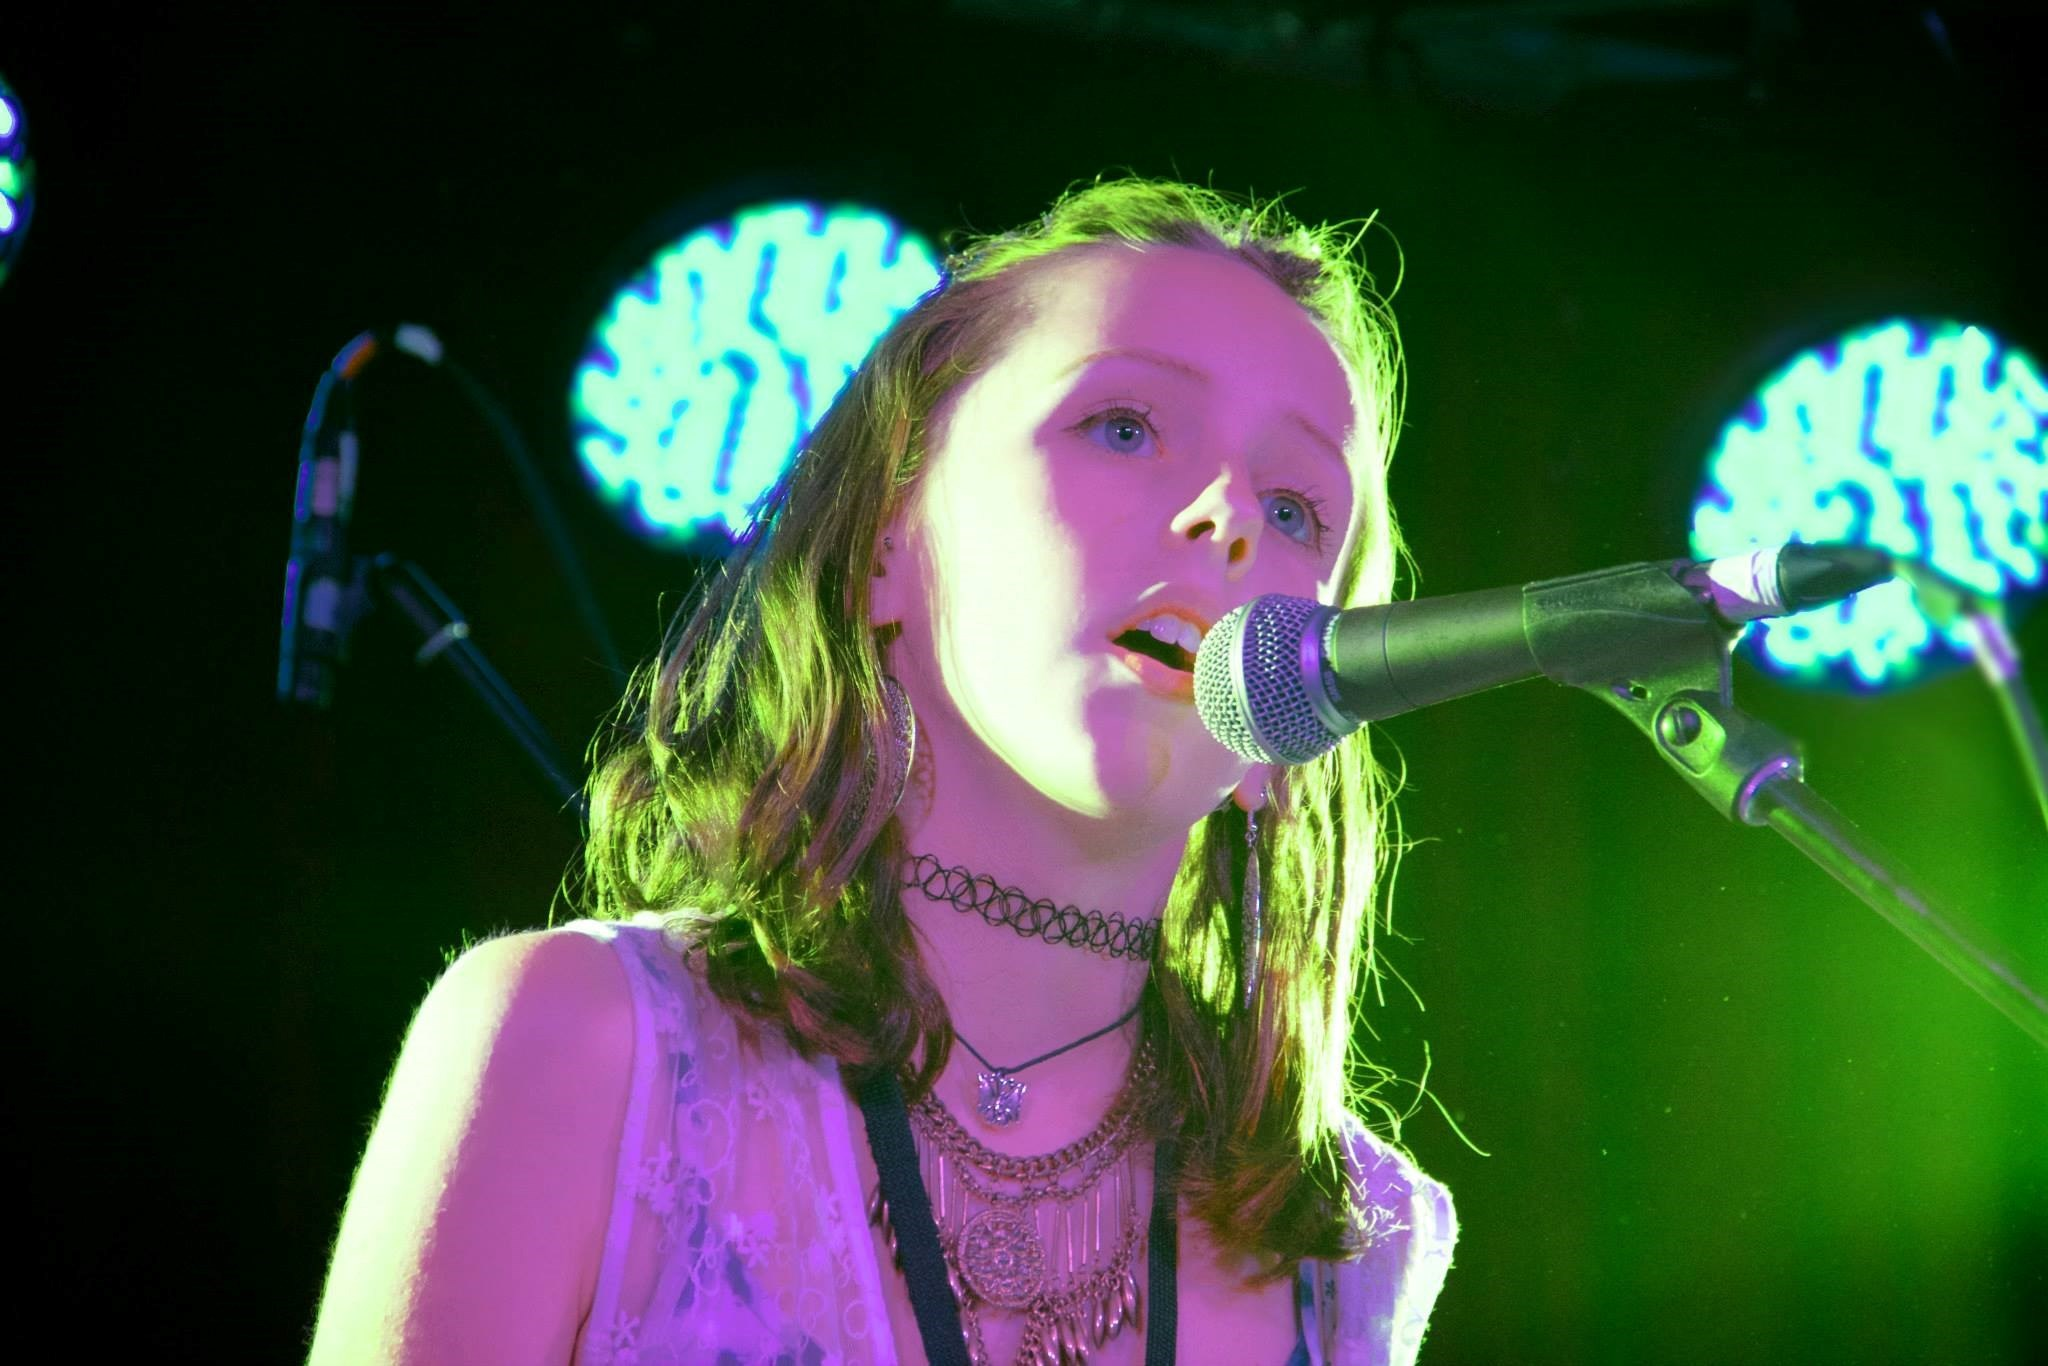 Alice singing Skinny Love at Battle of the Bands